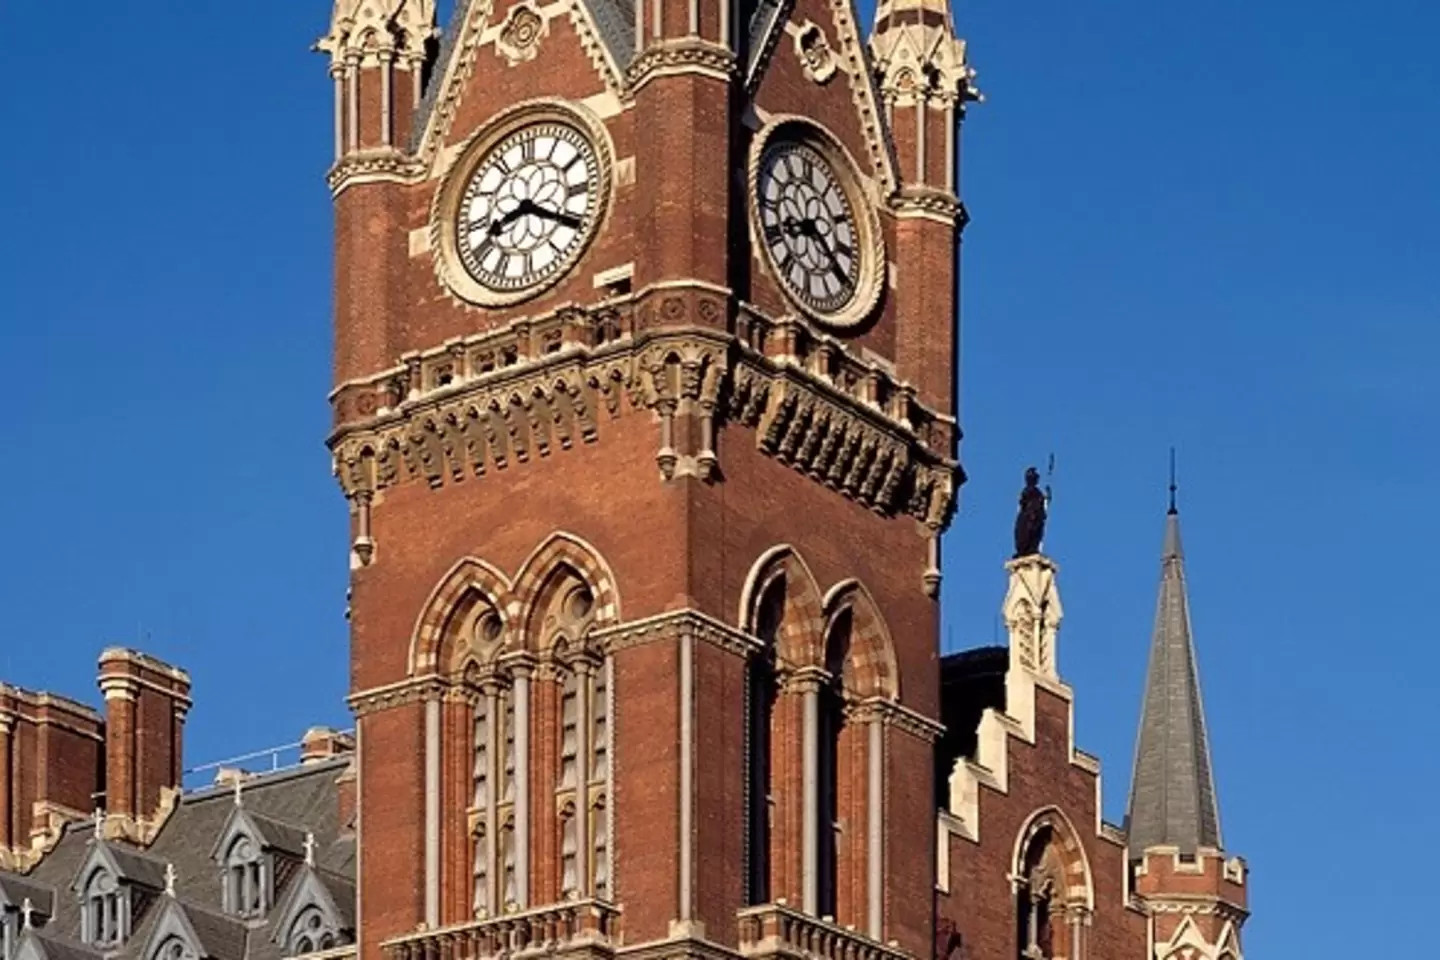 St Pancras Clocktower – London – weird airbnb rental